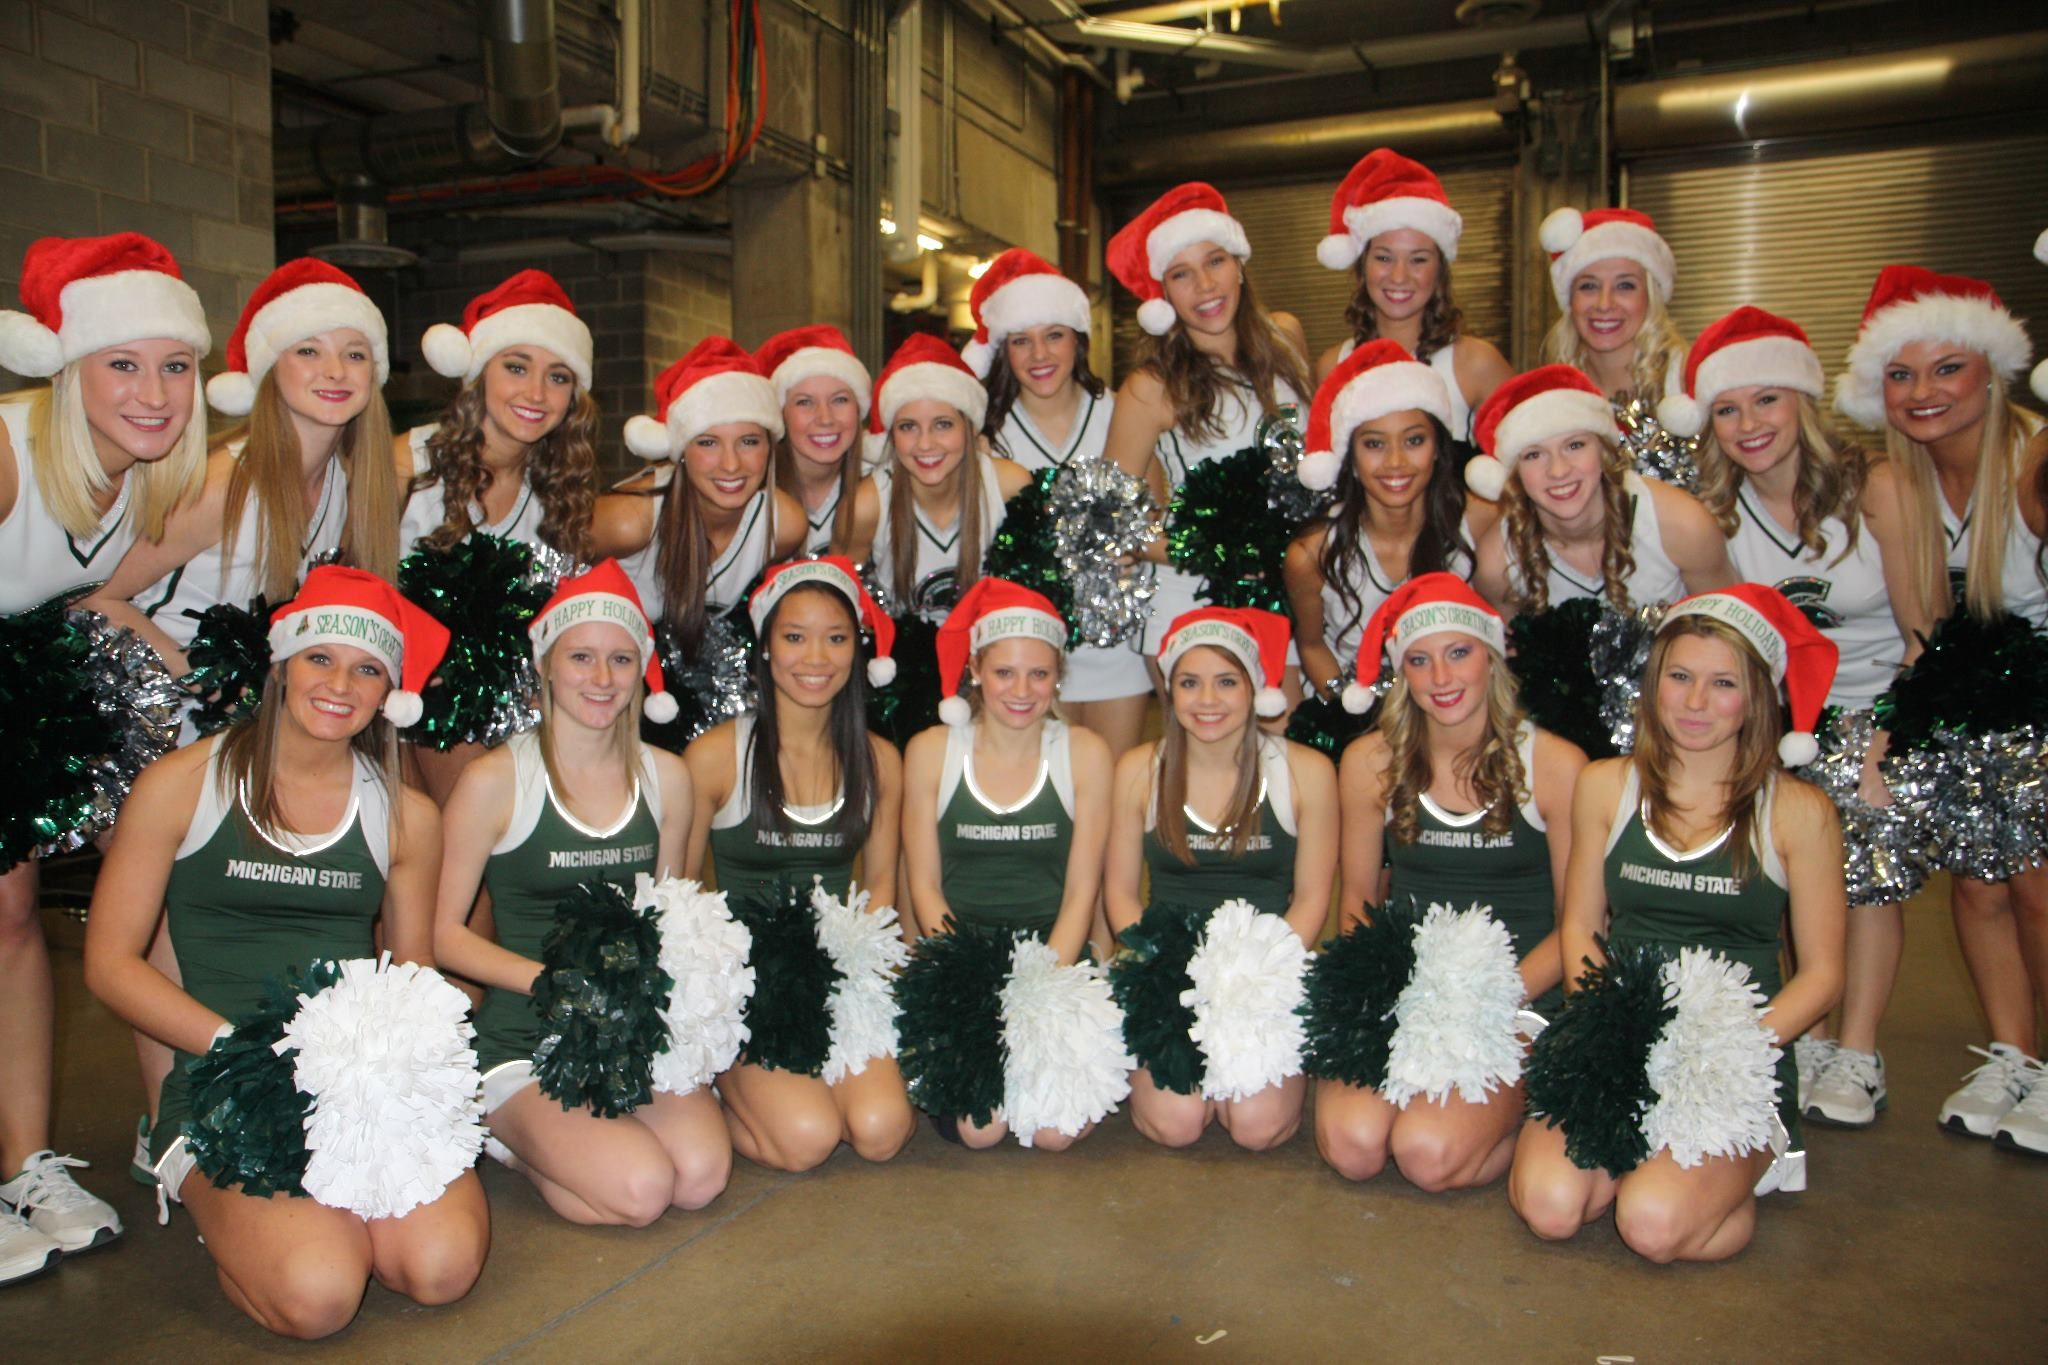 Know nothing Michigan state spartans cheerleaders remarkable question